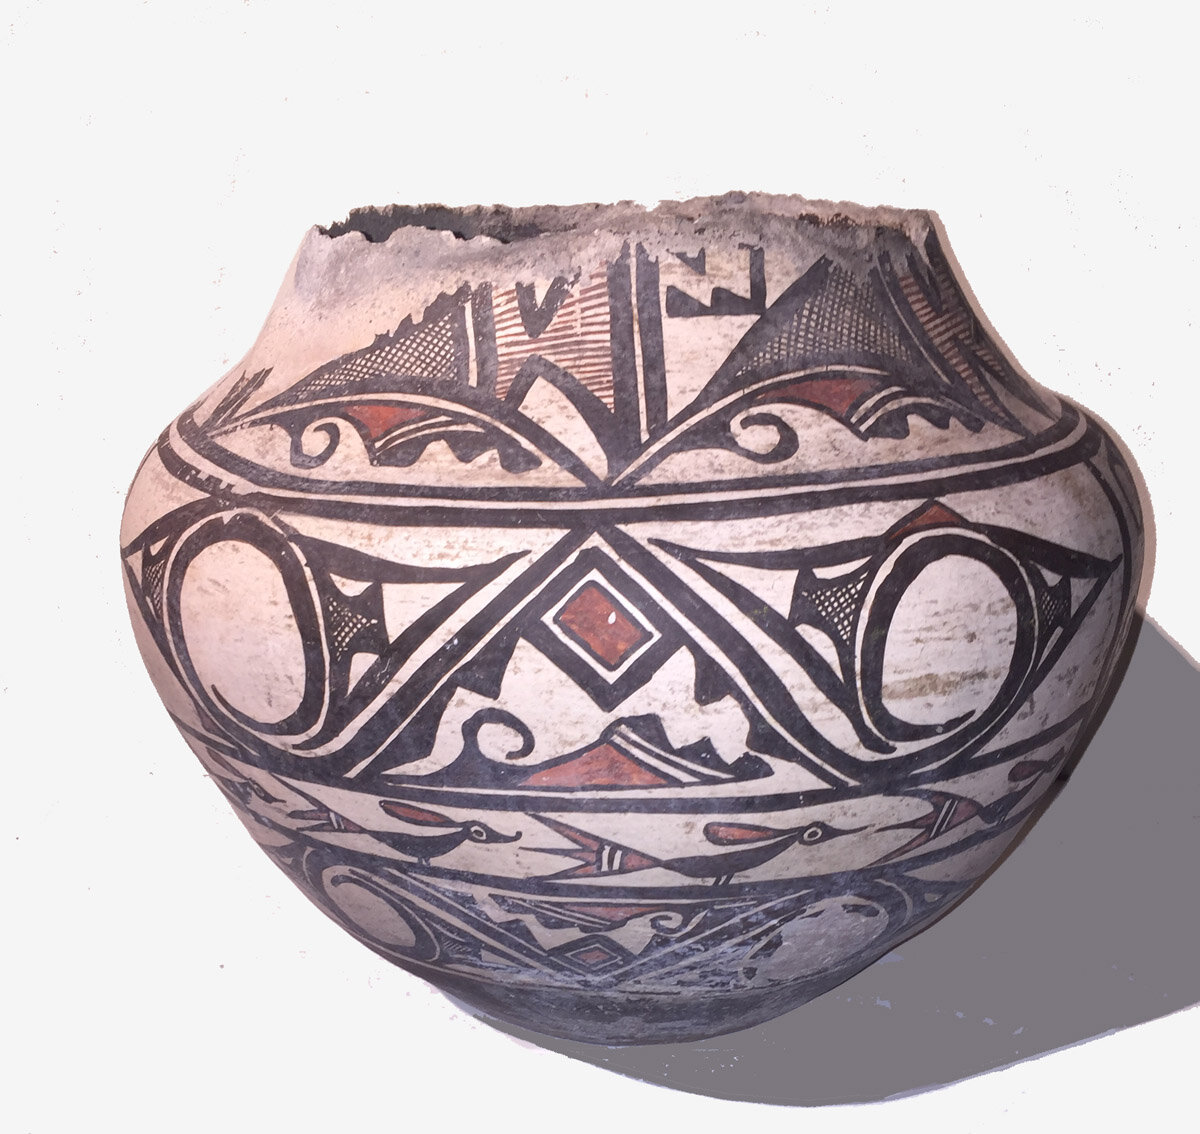 http://www.marcyburns.com/pottery-collection/historic-zuni-polychrome-jar